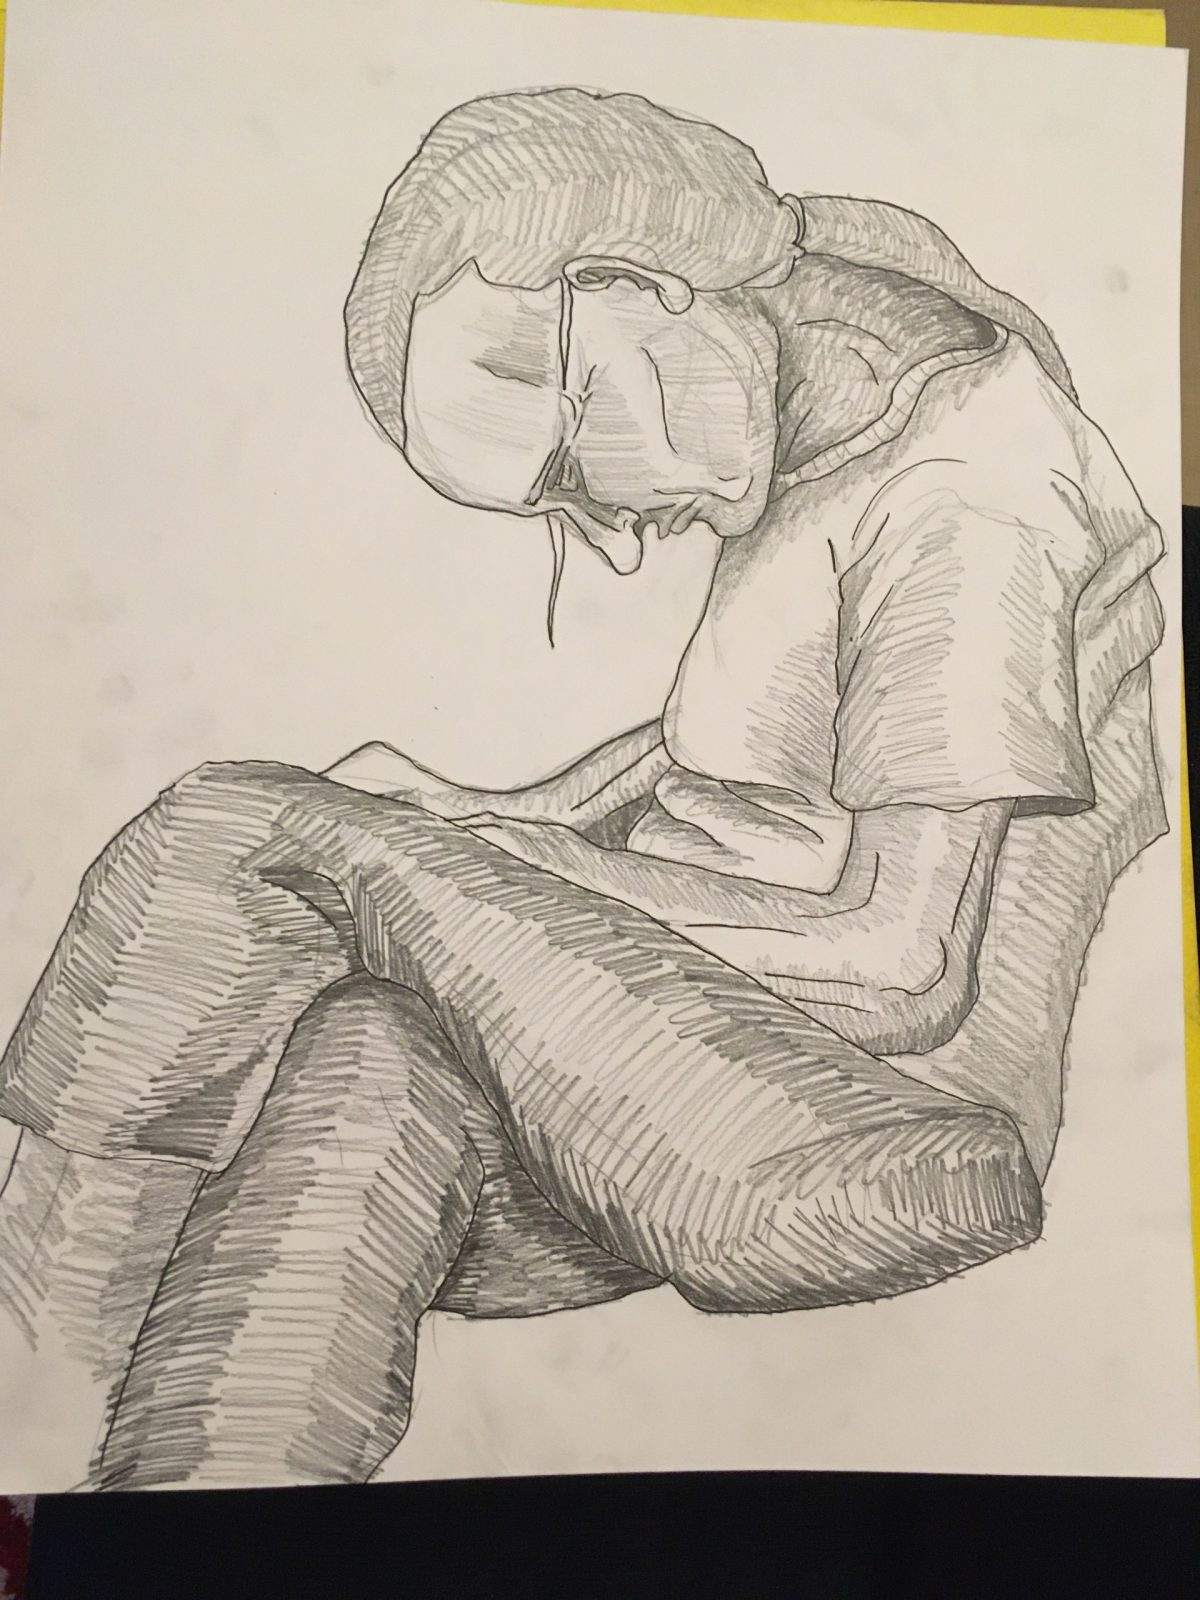 A graphite drawing of an older woman seated with her legs crossed and her head hung low